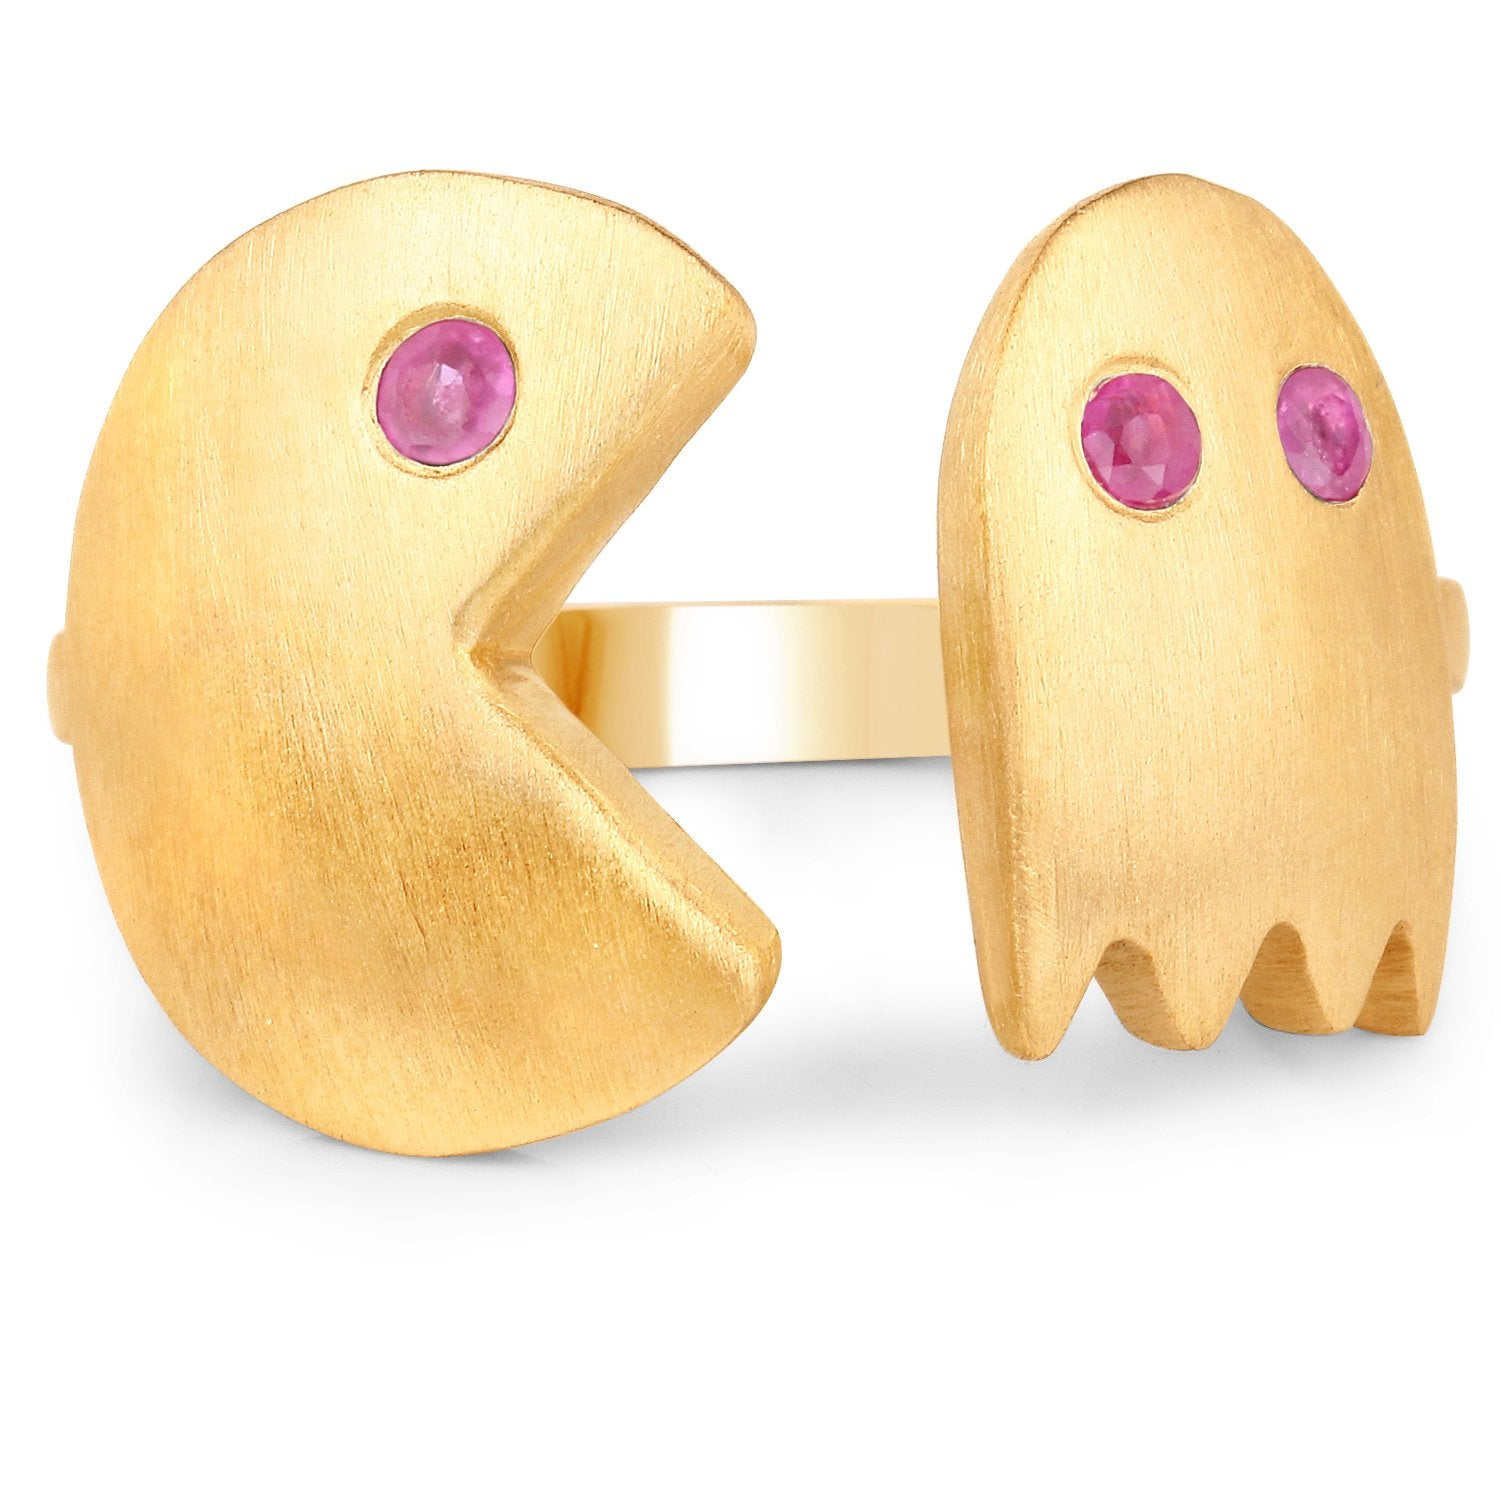 LoveHuang 0.14 Carats Genuine Ruby Pacman Ring Solid .925 Sterling Silver With 18KT Yellow Gold Plating, Matte Finish